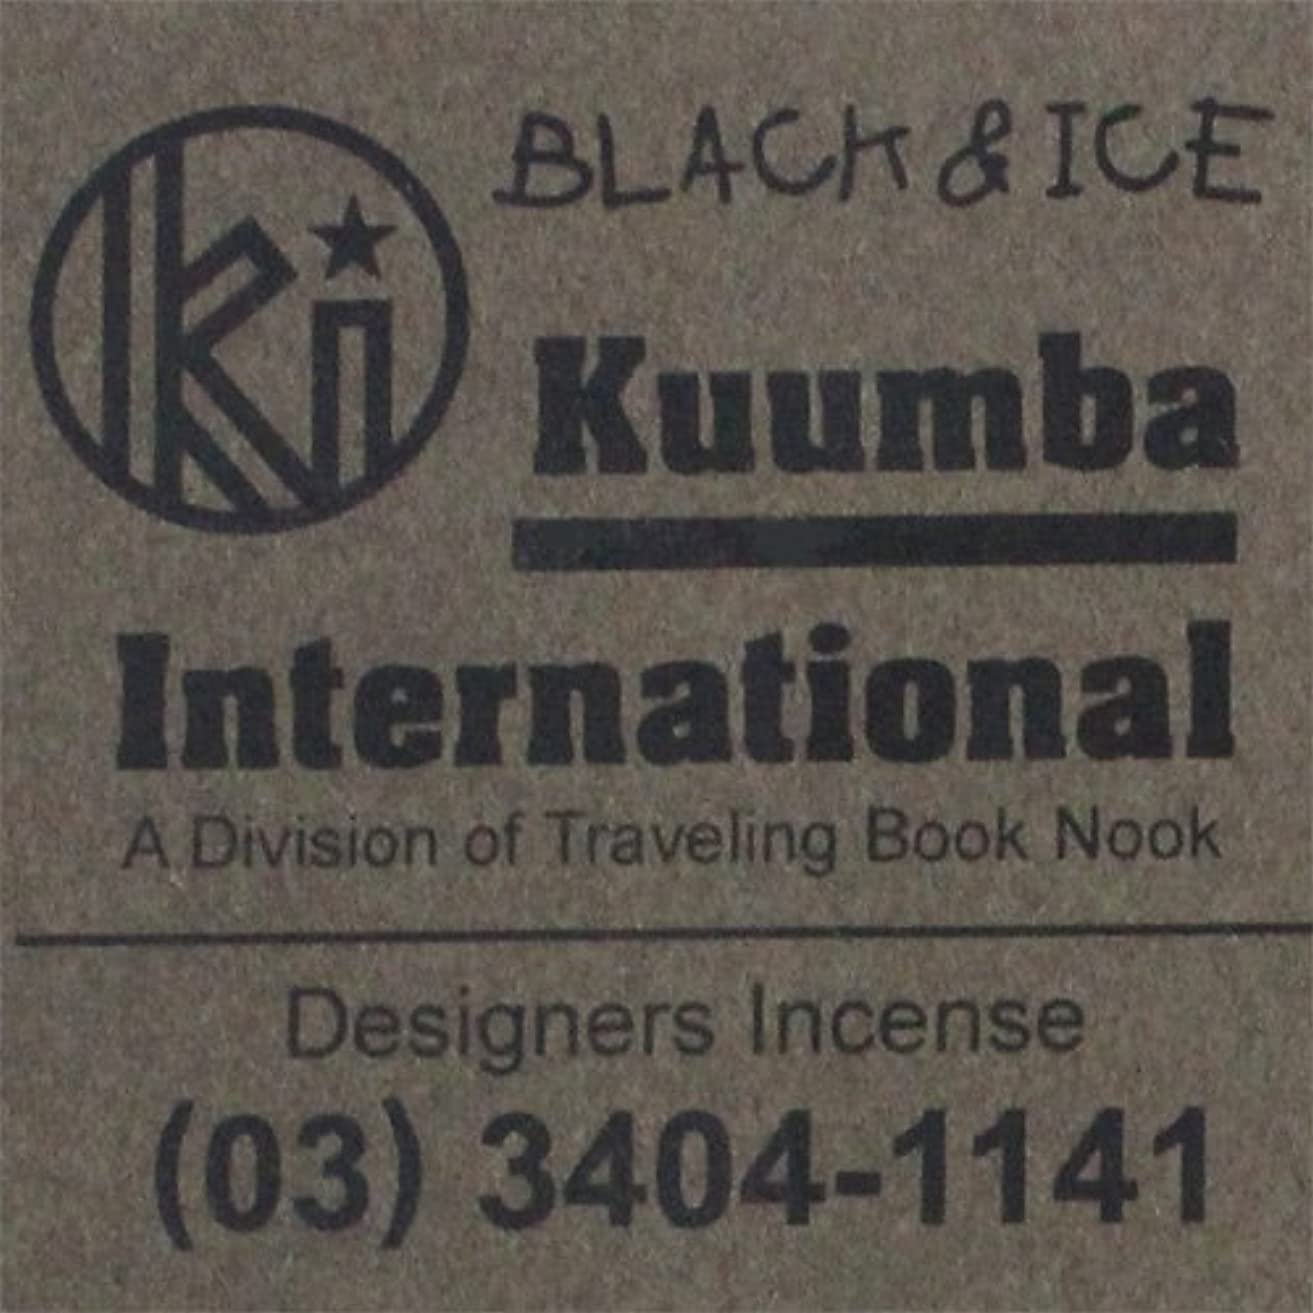 冗長活発個性KUUMBA / クンバ『incense』(BLACK&ICE) (Regular size)